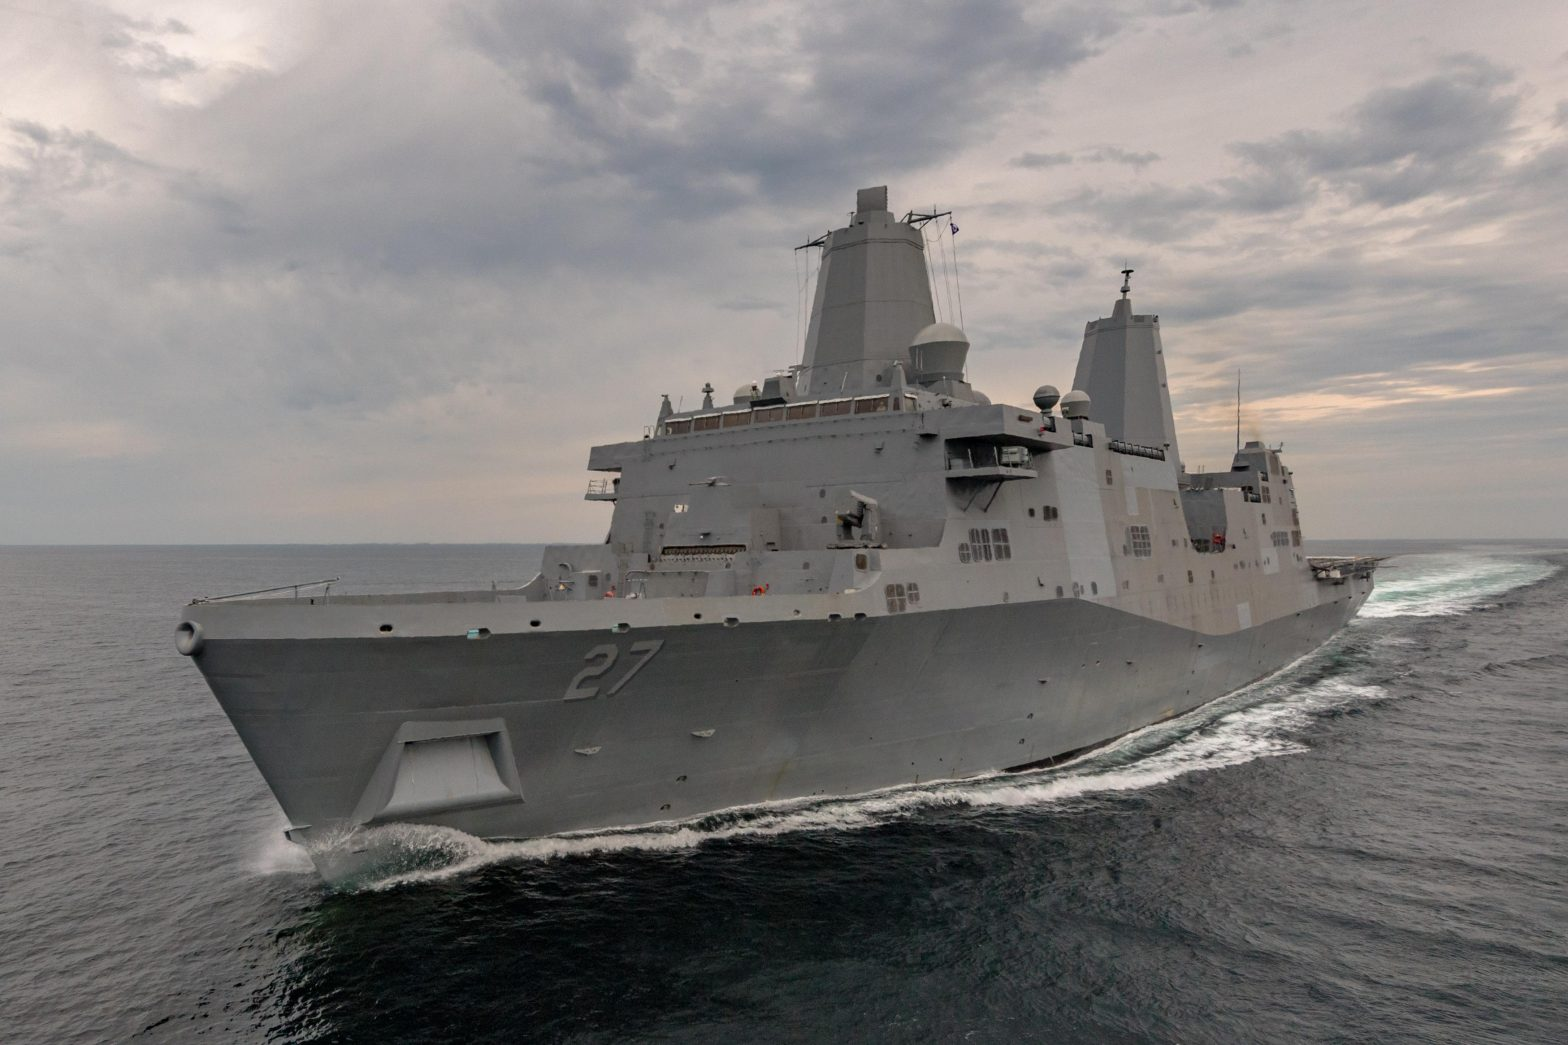 US Navy; The 11th San Antonio-class amphibious warship completed builder's trials